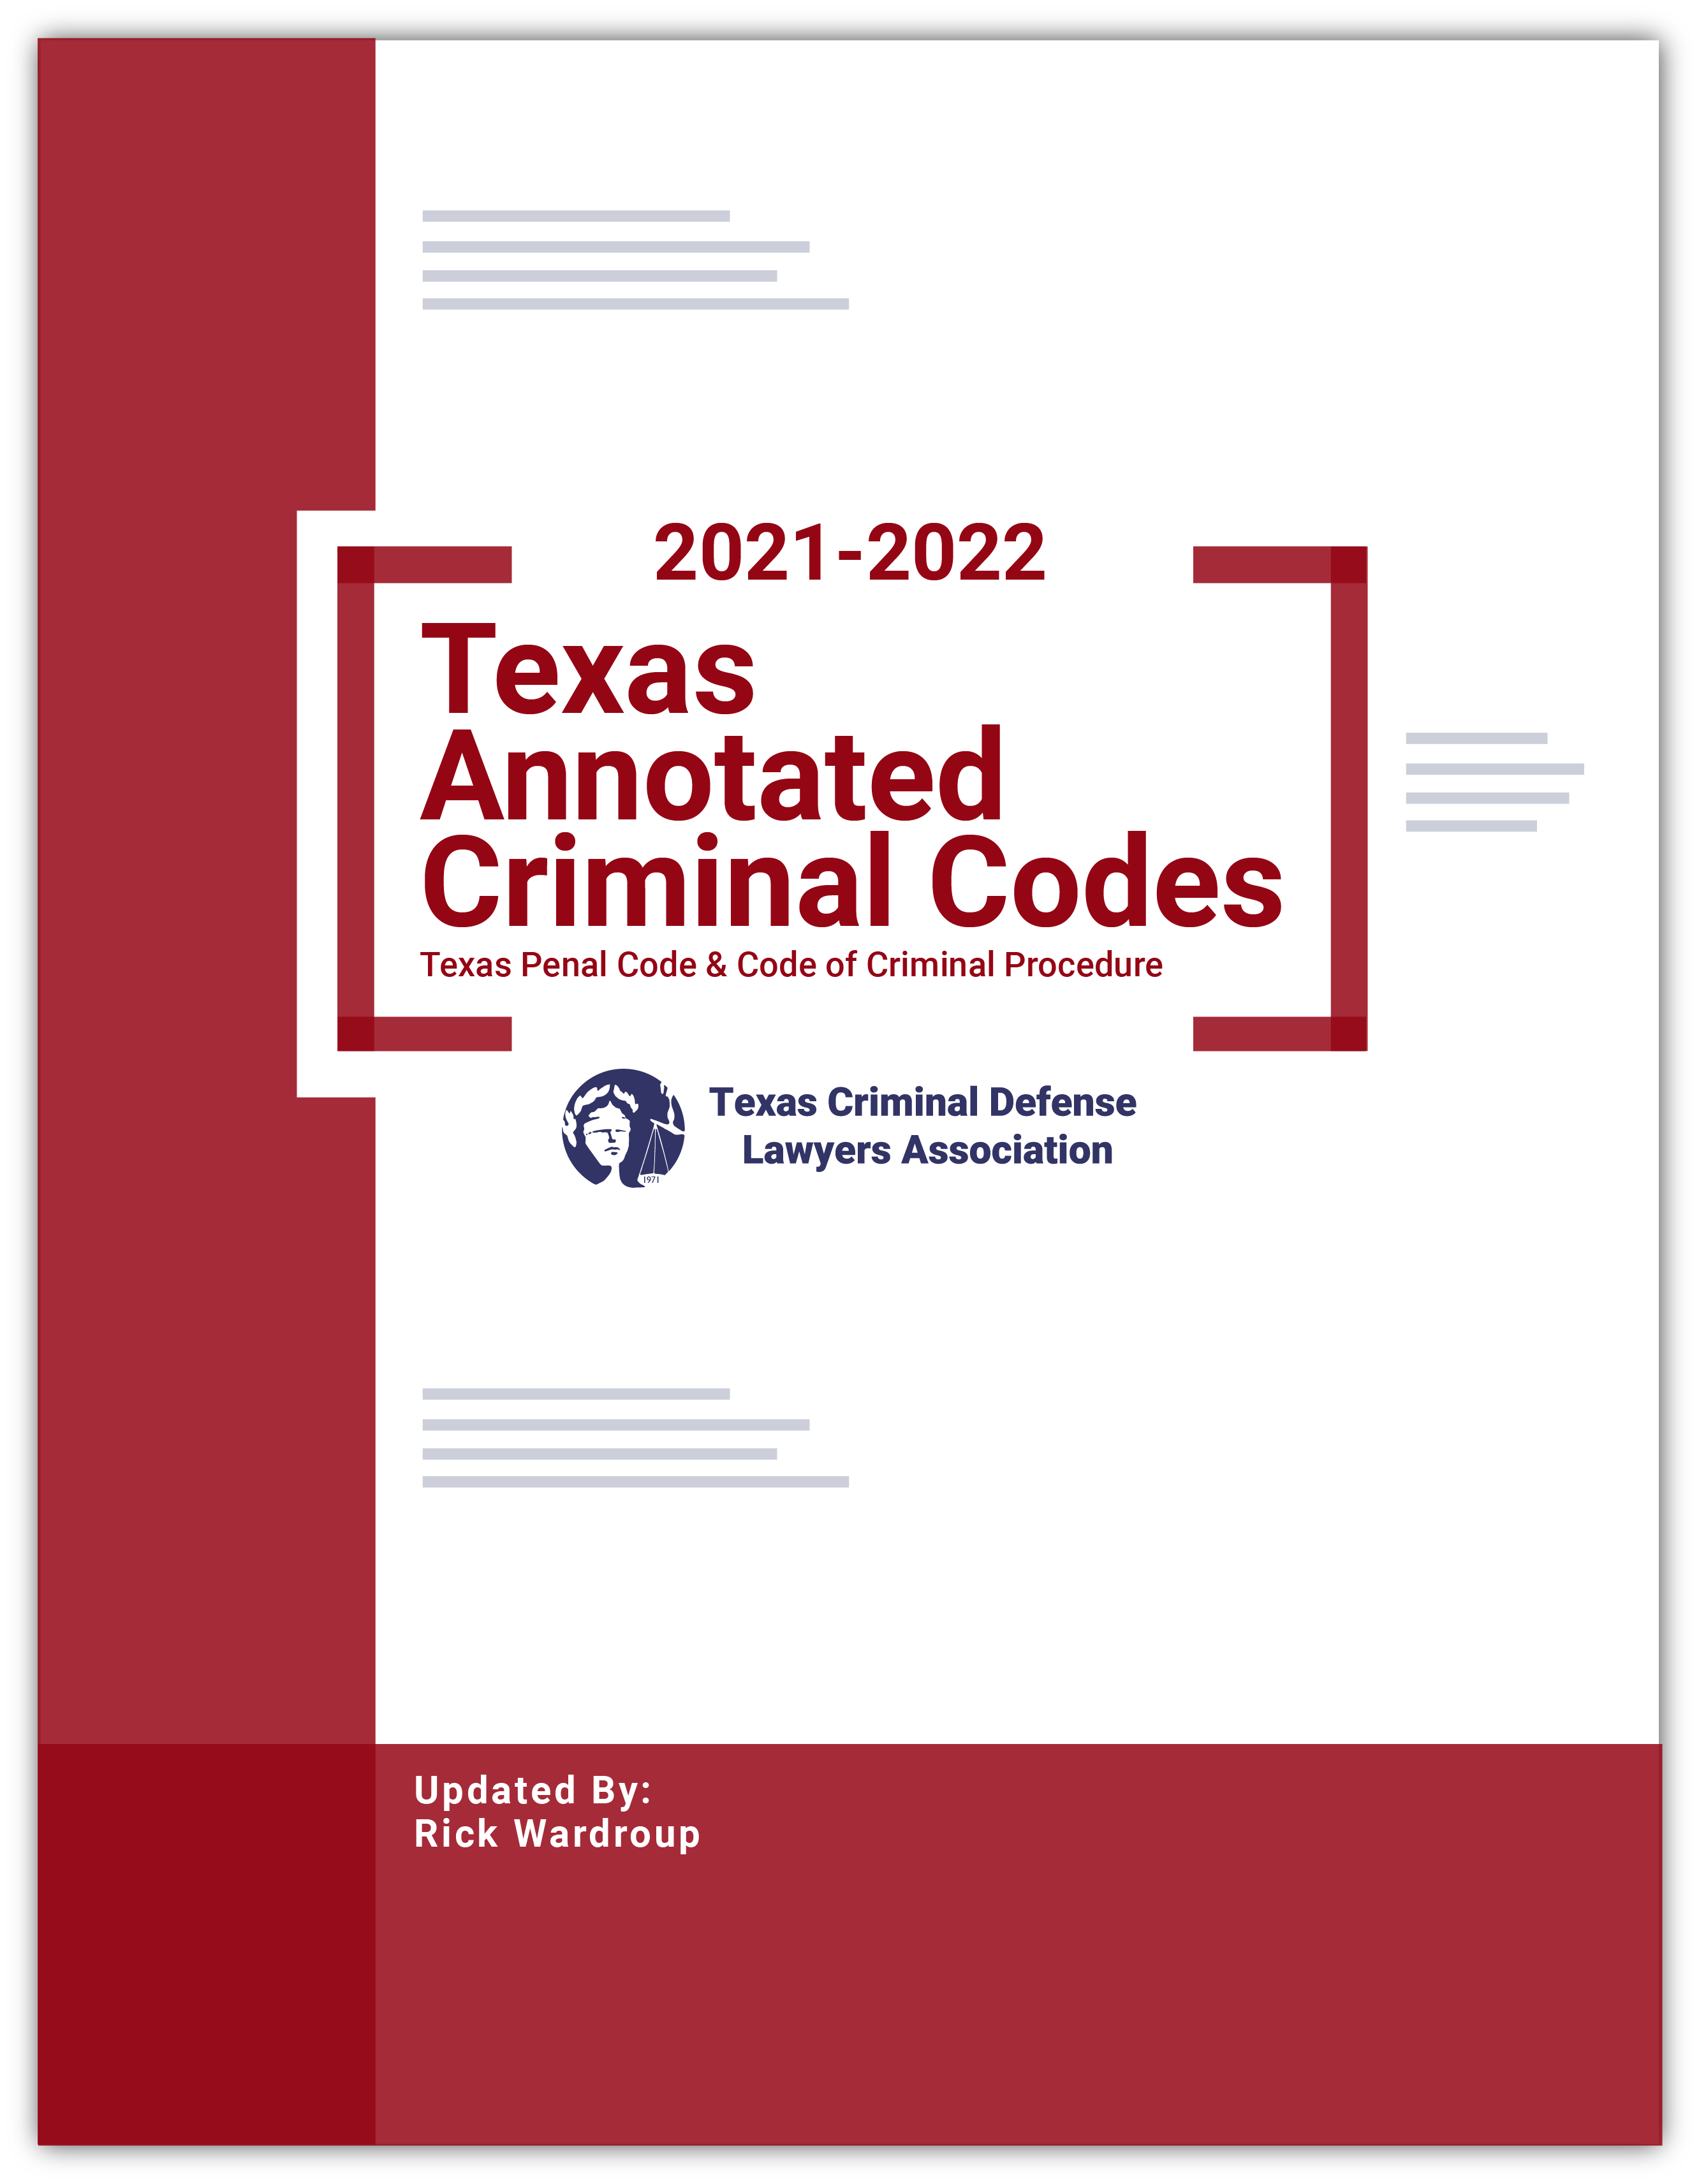 Texas Annotated Criminal Codebooks, 2021